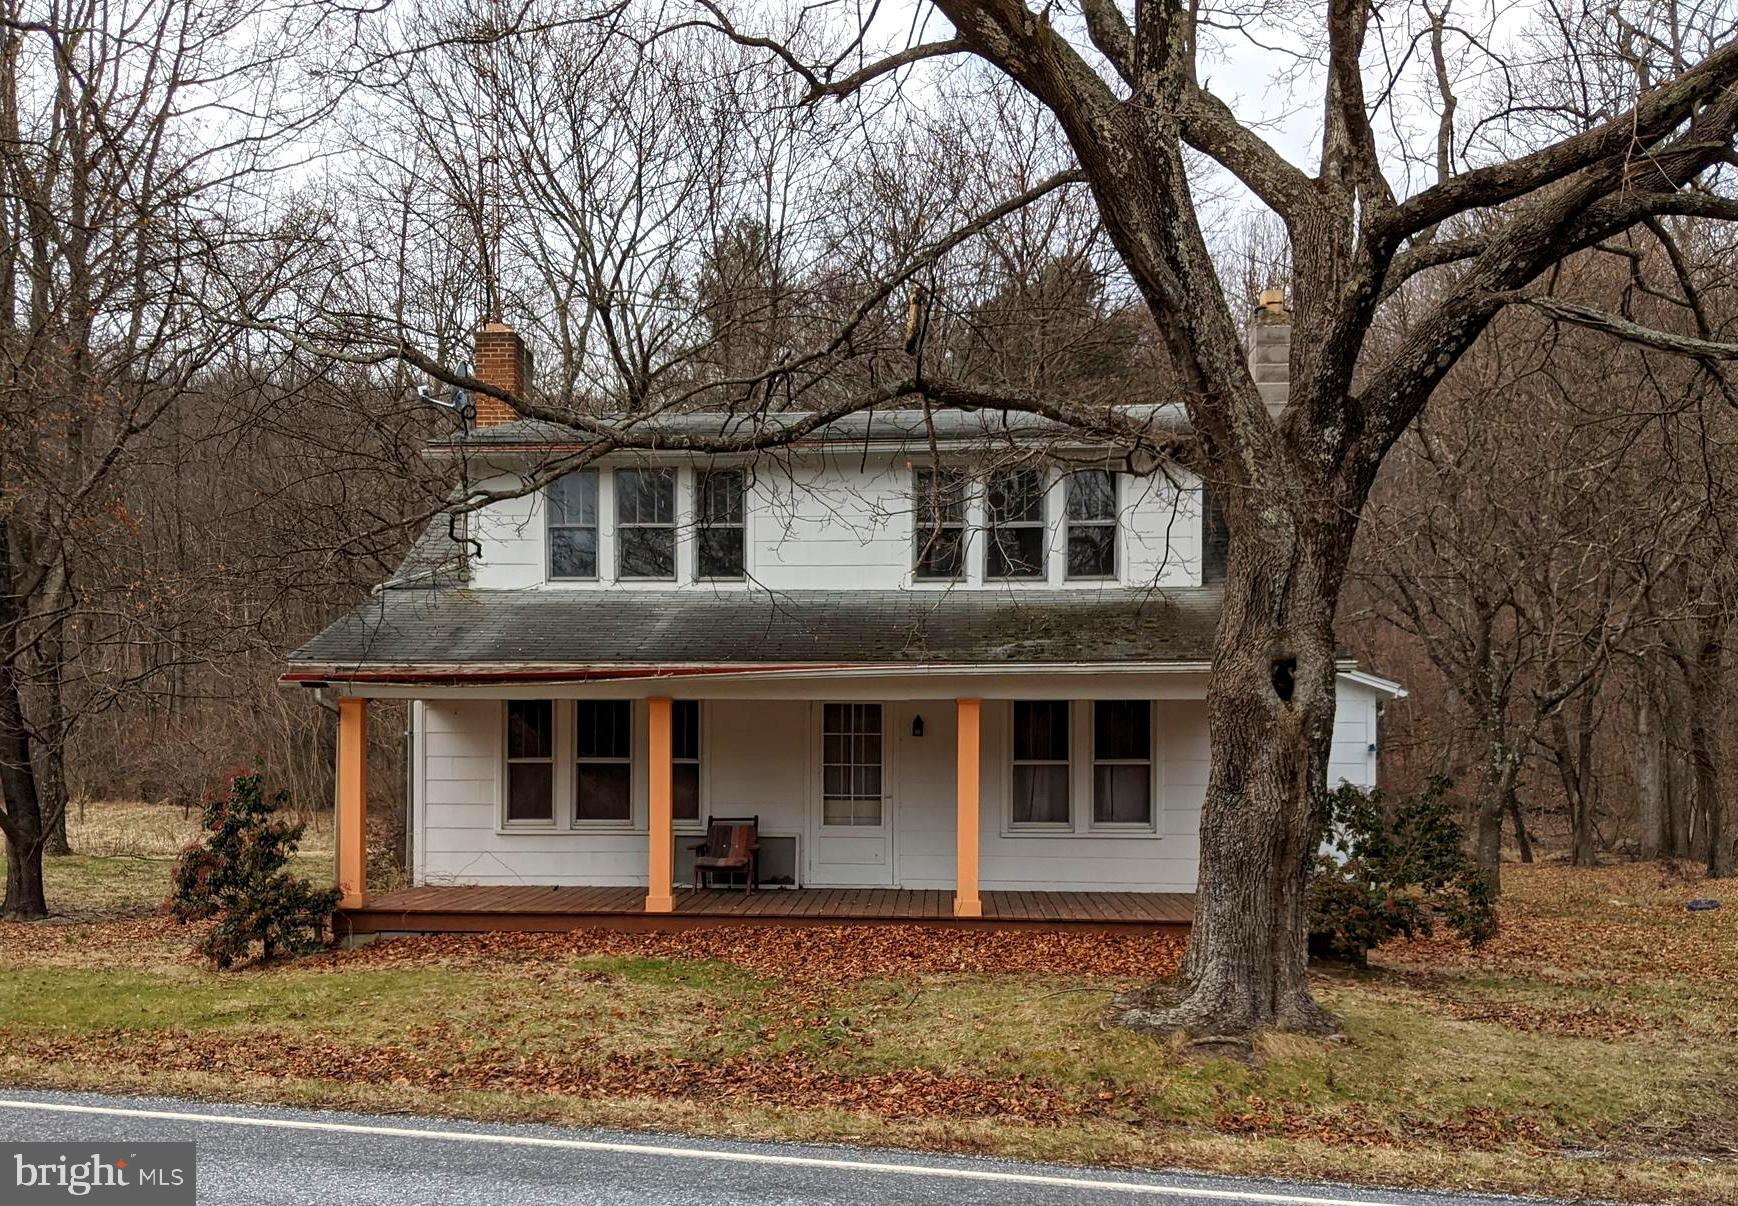 2209 COON ROAD, ASPERS, PA 17304